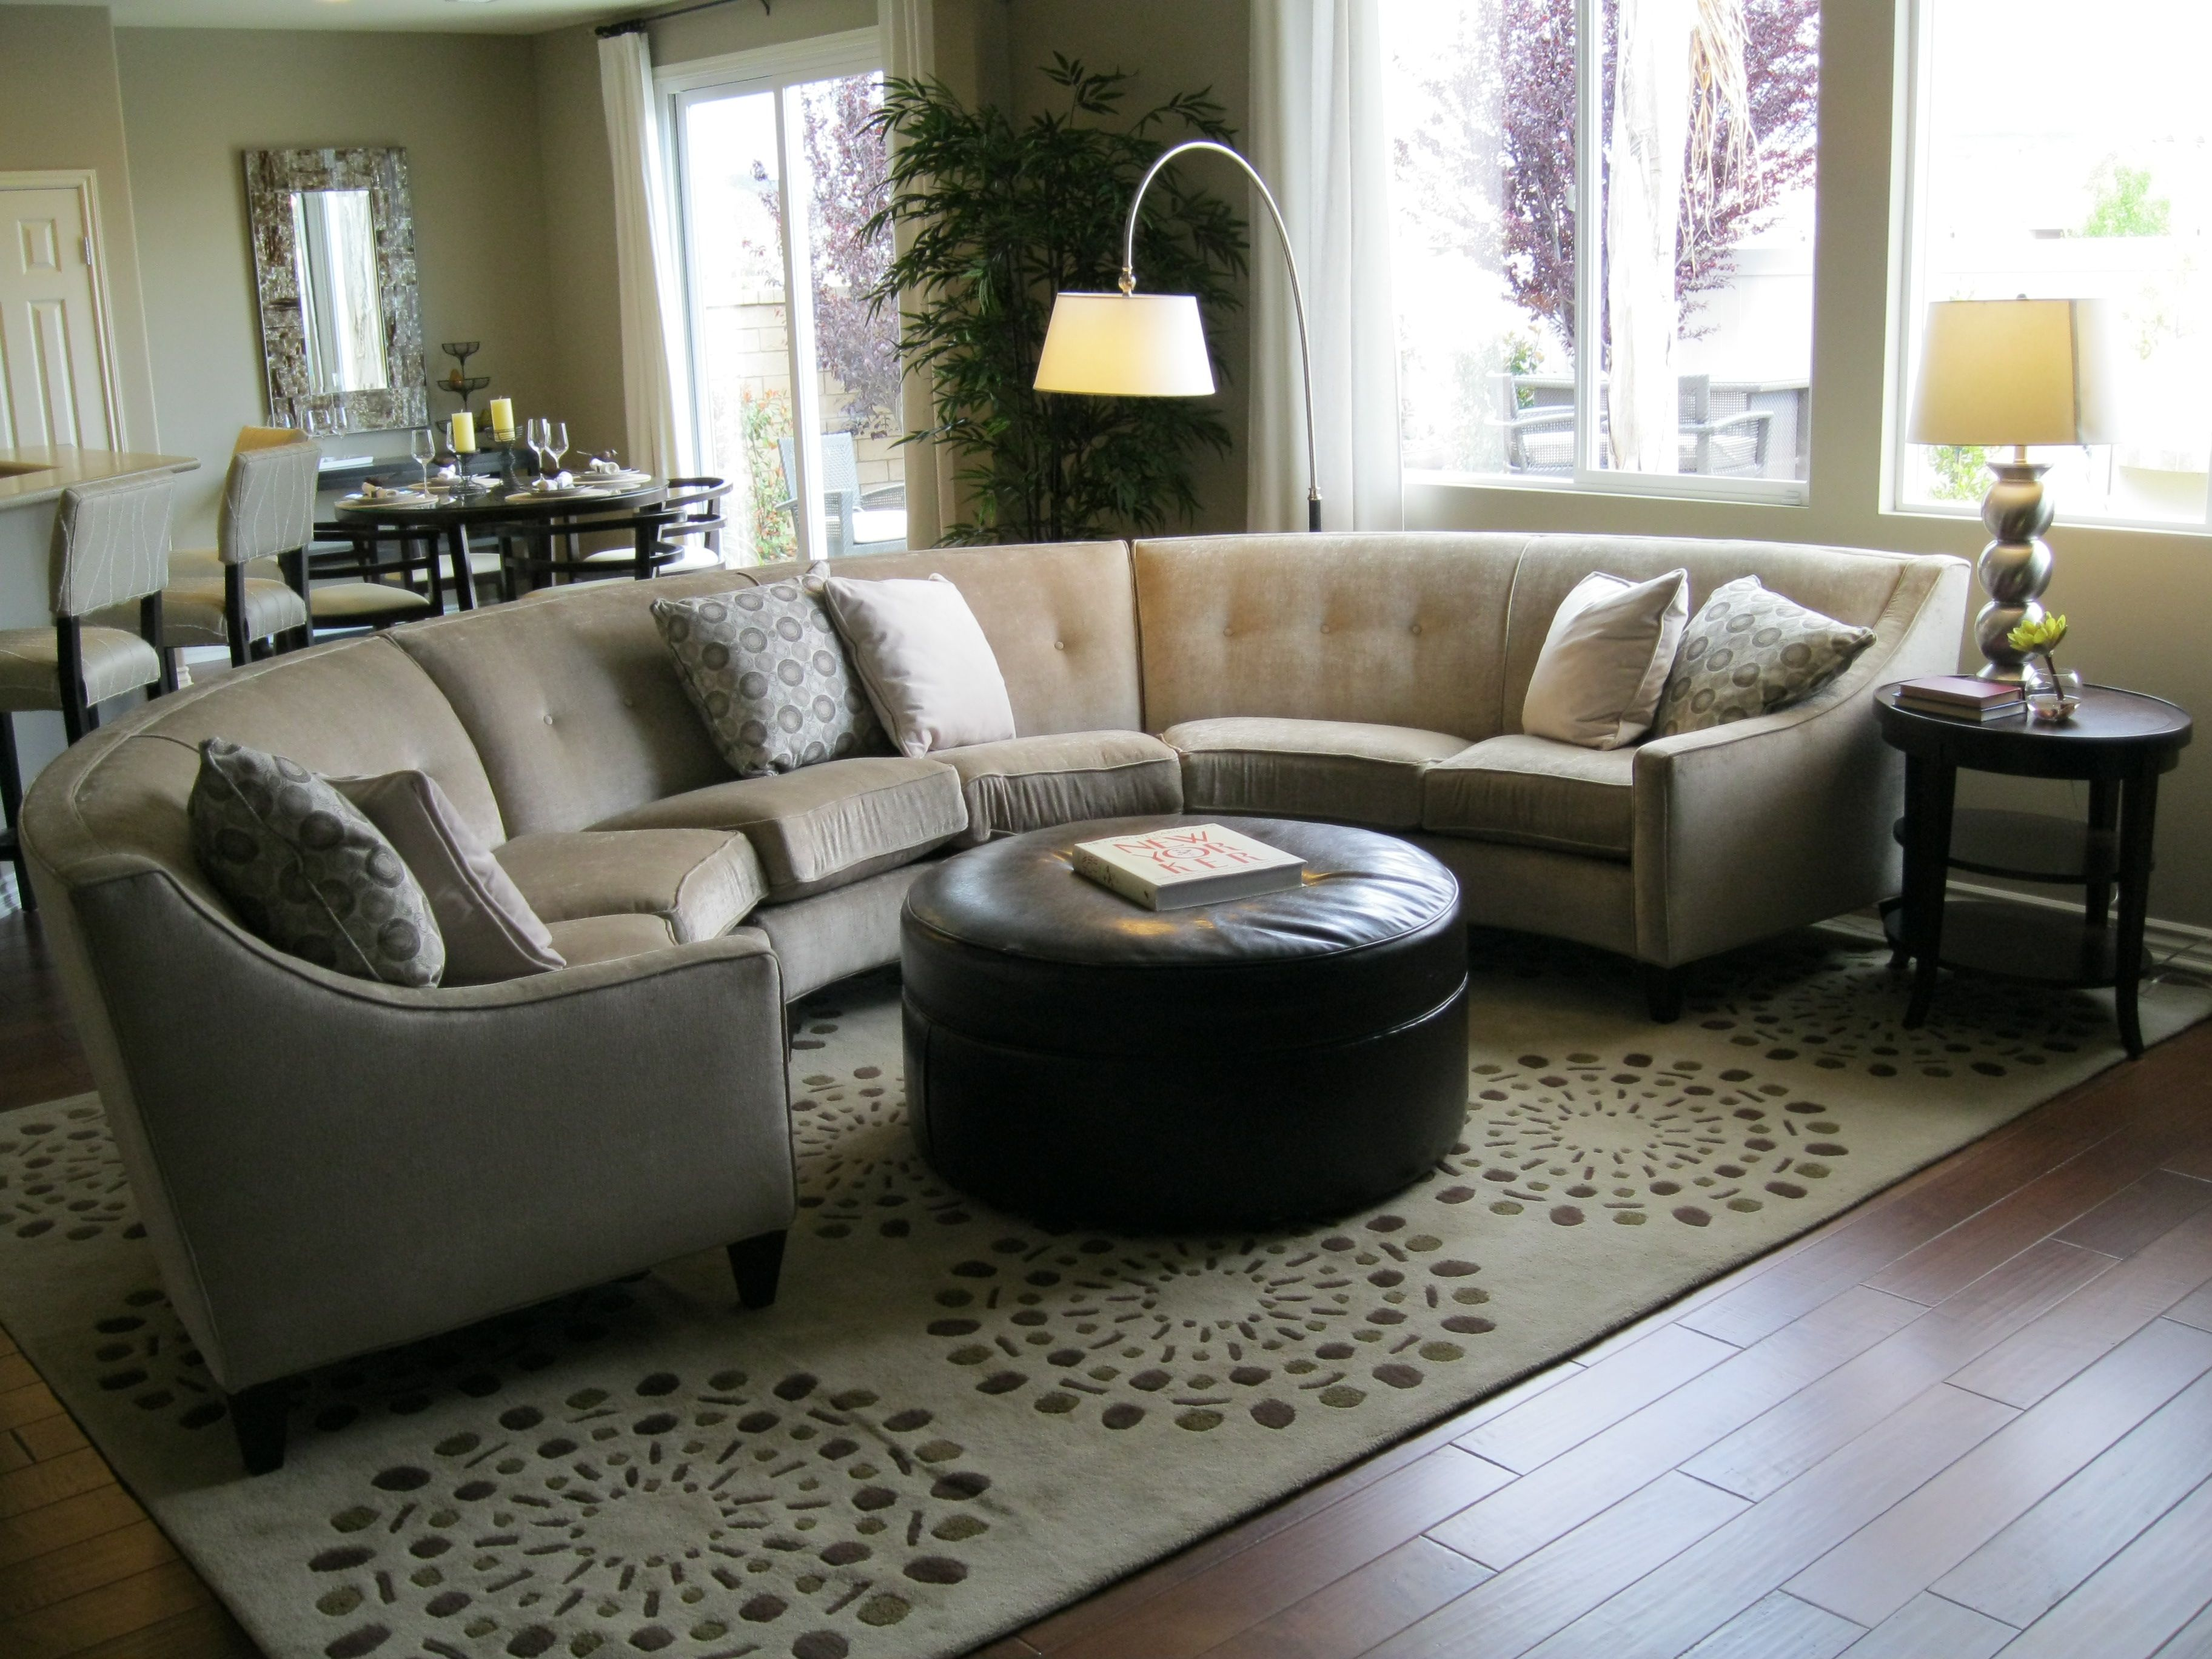 rounded couch ours looks similar Home ideas Pinterest